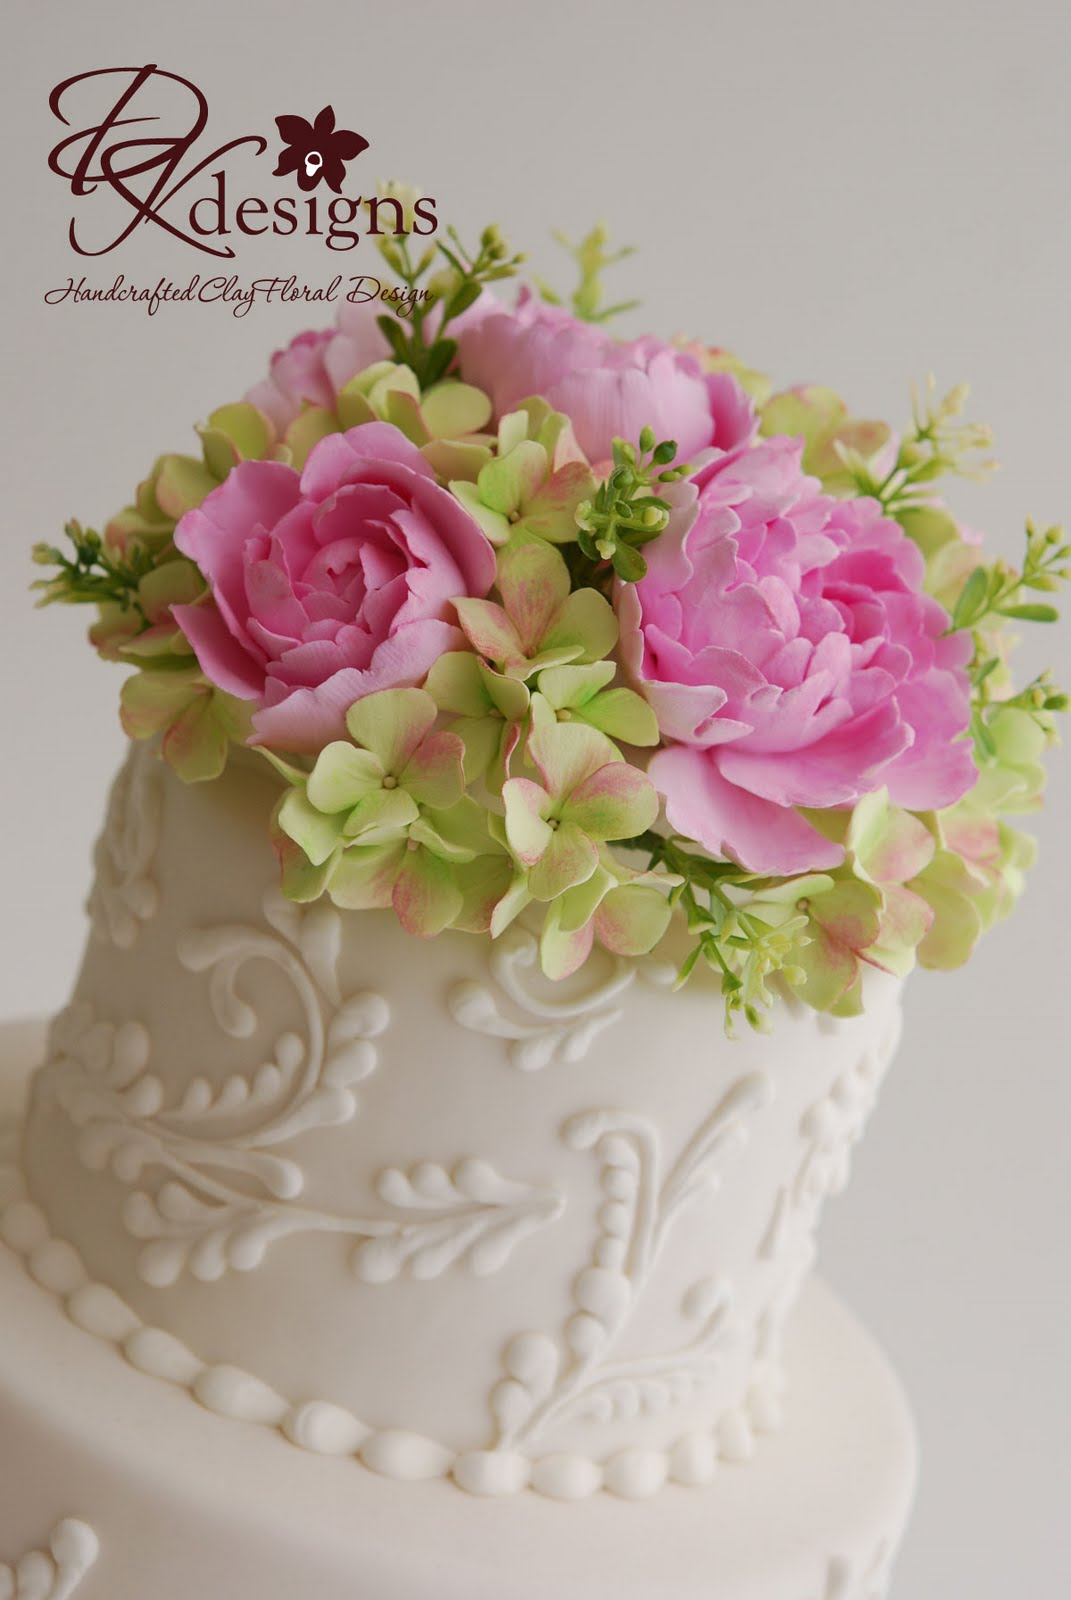 DK Designs: Custom Cake Flower Topper - Pink Peonies and ...